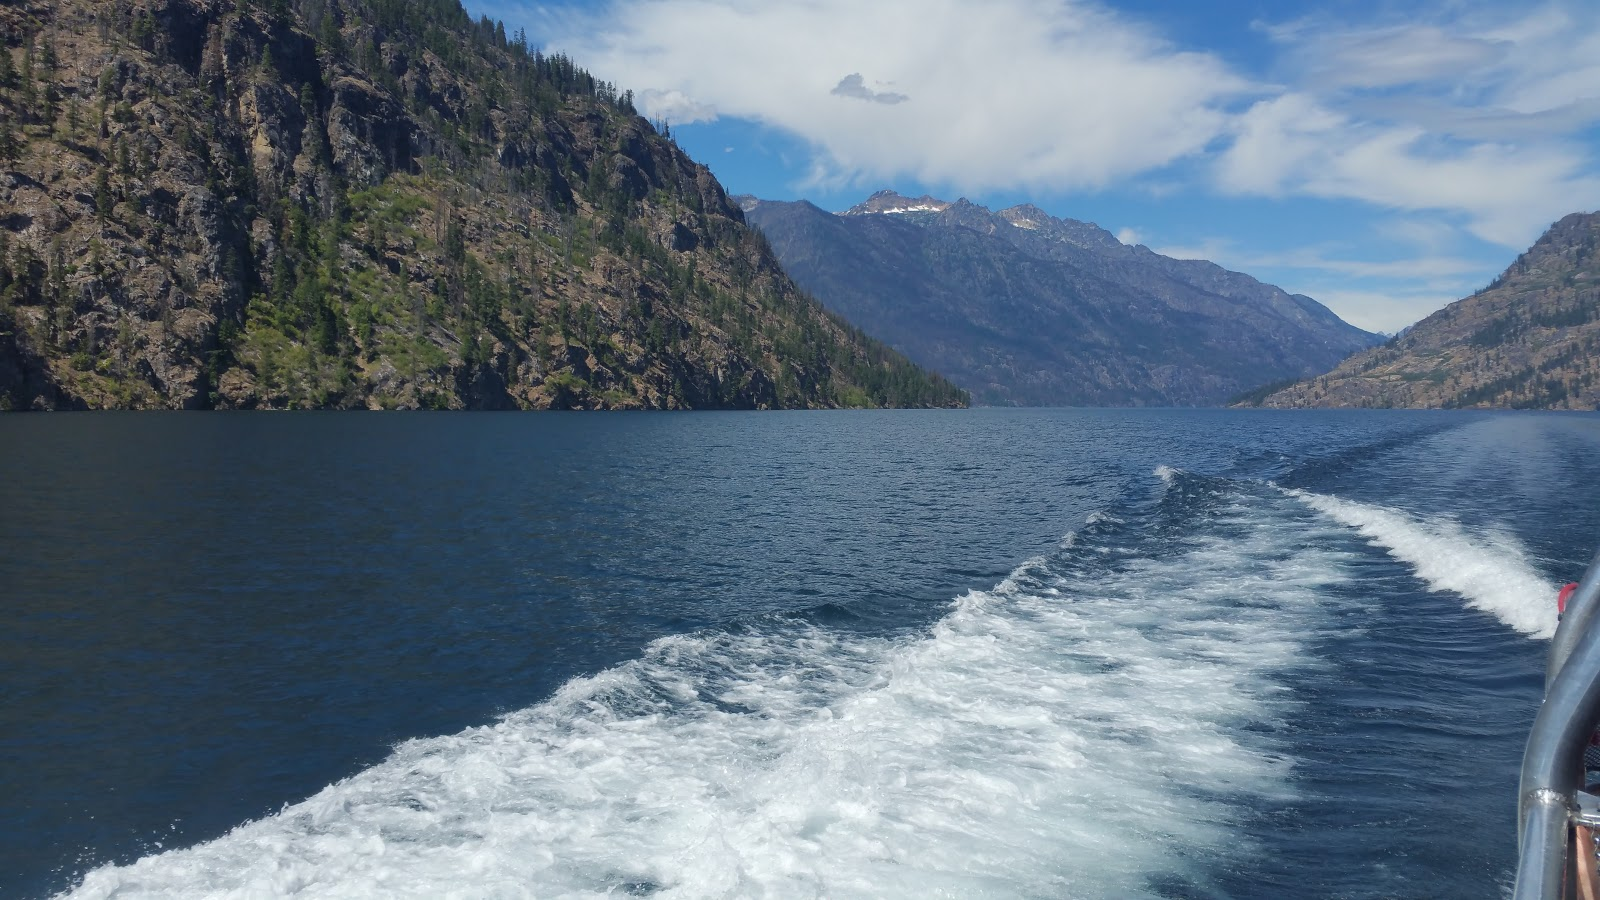 Image from a Ferry boat on Lake chelan